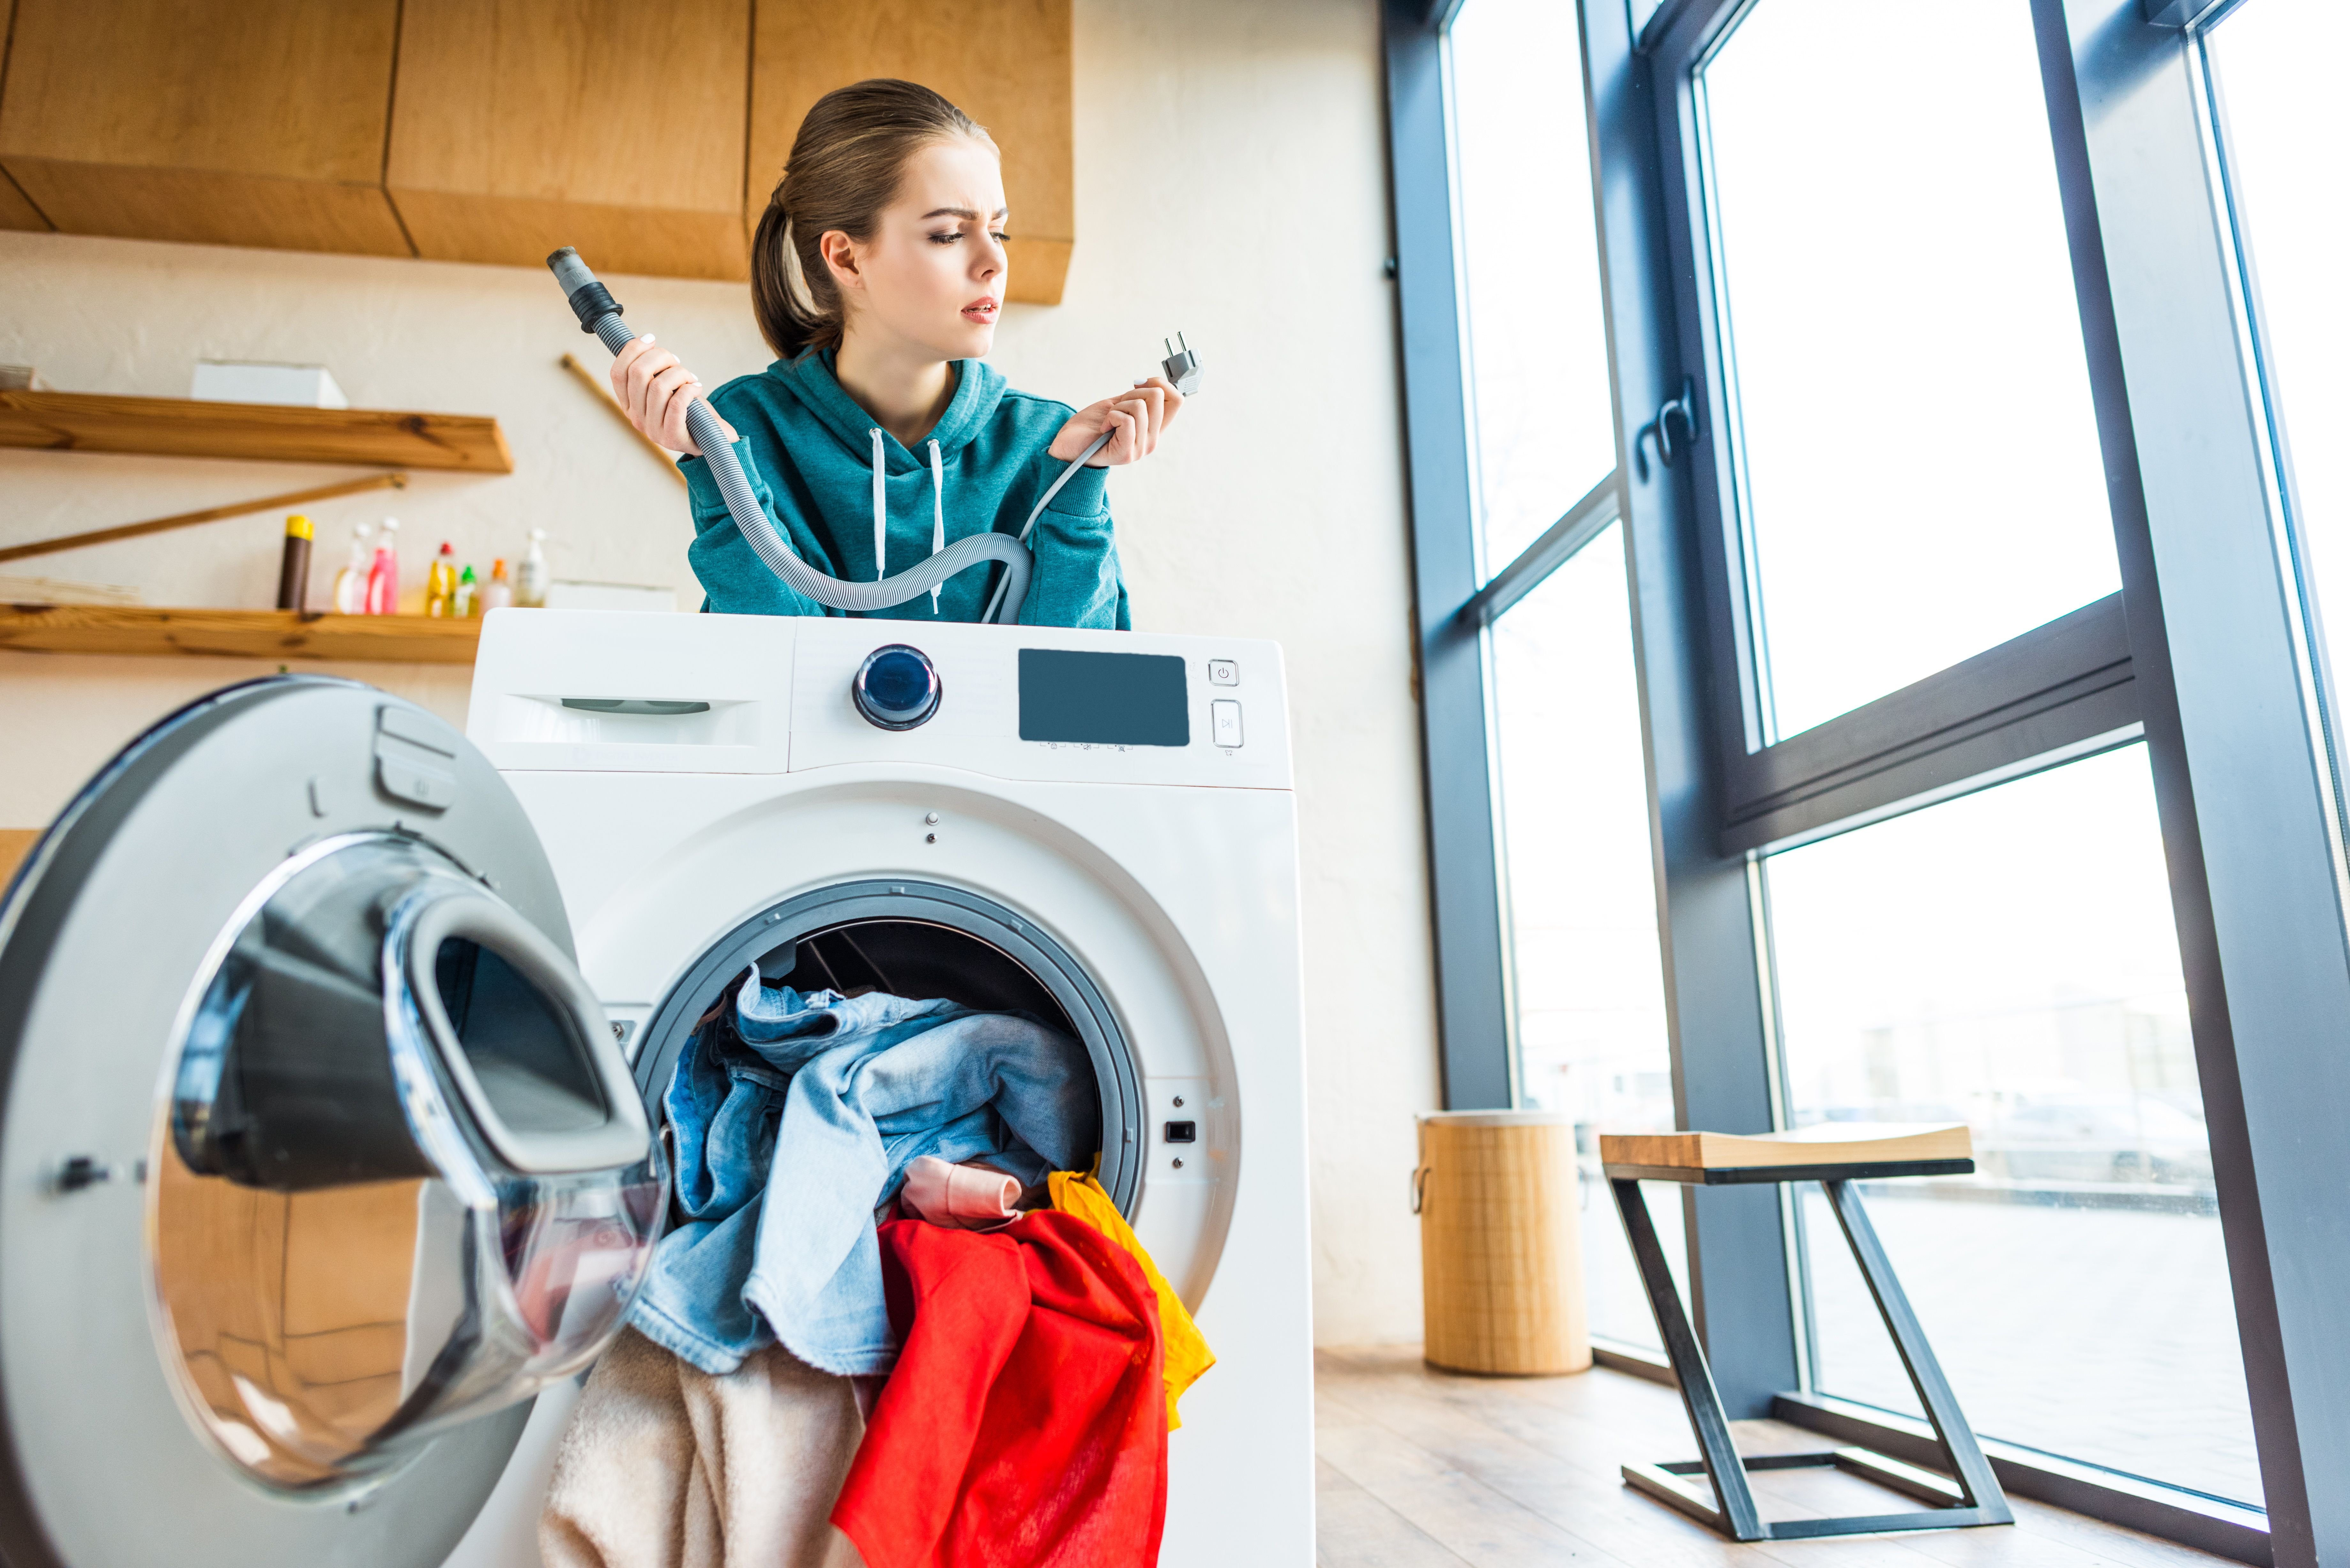 A young woman leaning at a broken washing machine